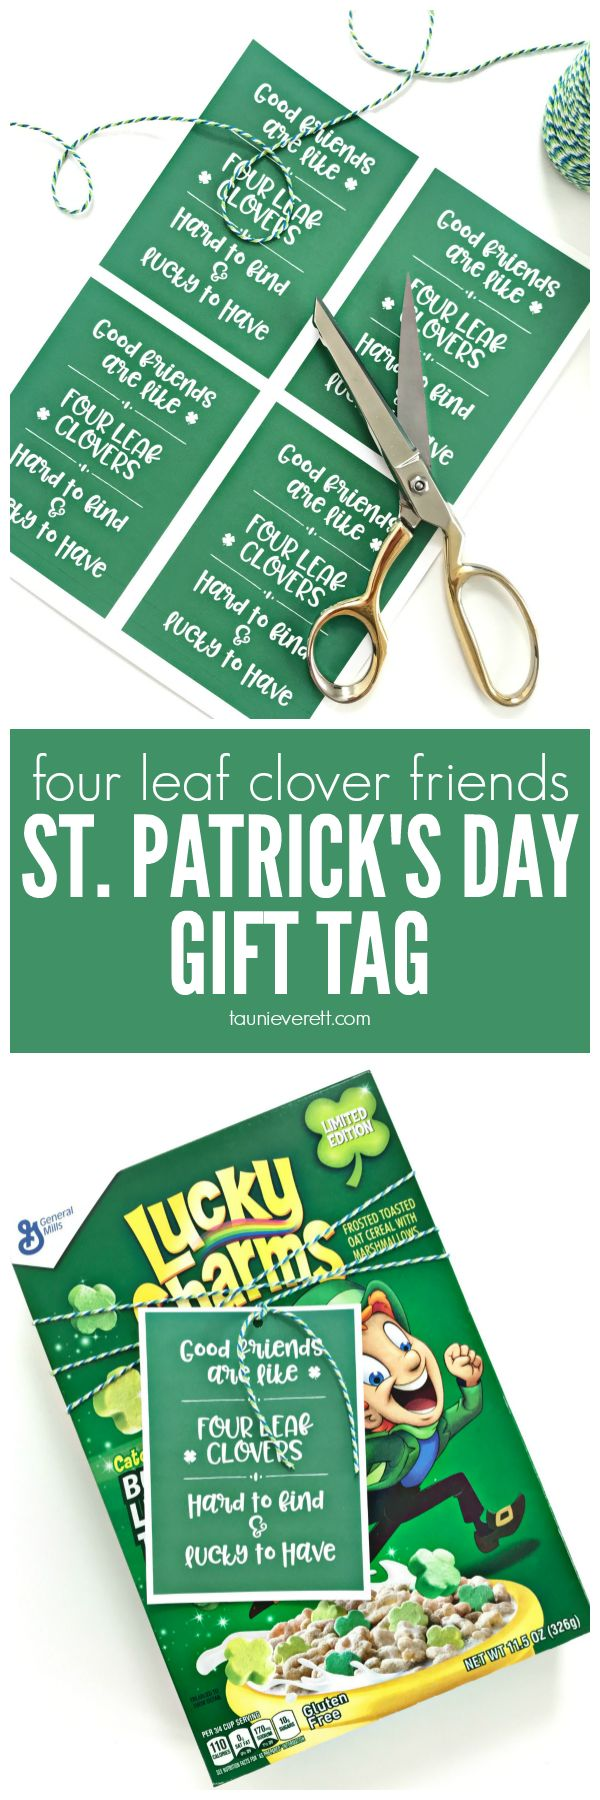 St. Patrick's Day Four Leaf Clover Friends Gift Tag + BONUS Teachers Edition. Free donwload. #printable #stpatricksday